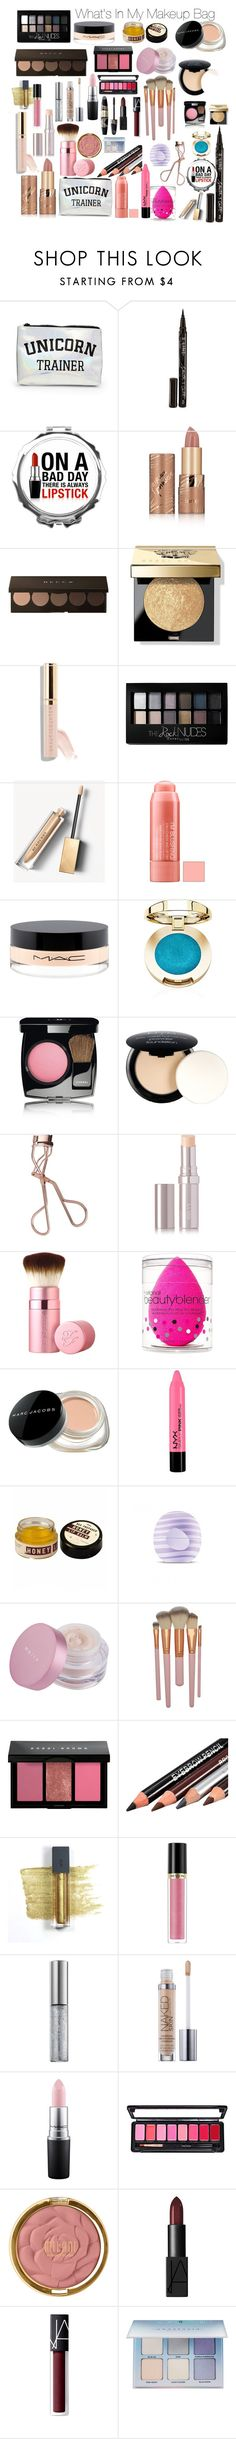 """What's In My Makeup Bag"" by lastgeneration ❤ liked on Polyvore featuring beauty, Forever 21, Smith & Cult, tarte, Bobbi Brown Cosmetics, Beautycounter, Maybelline, Burberry, MAC Cosmetics and Chanel"